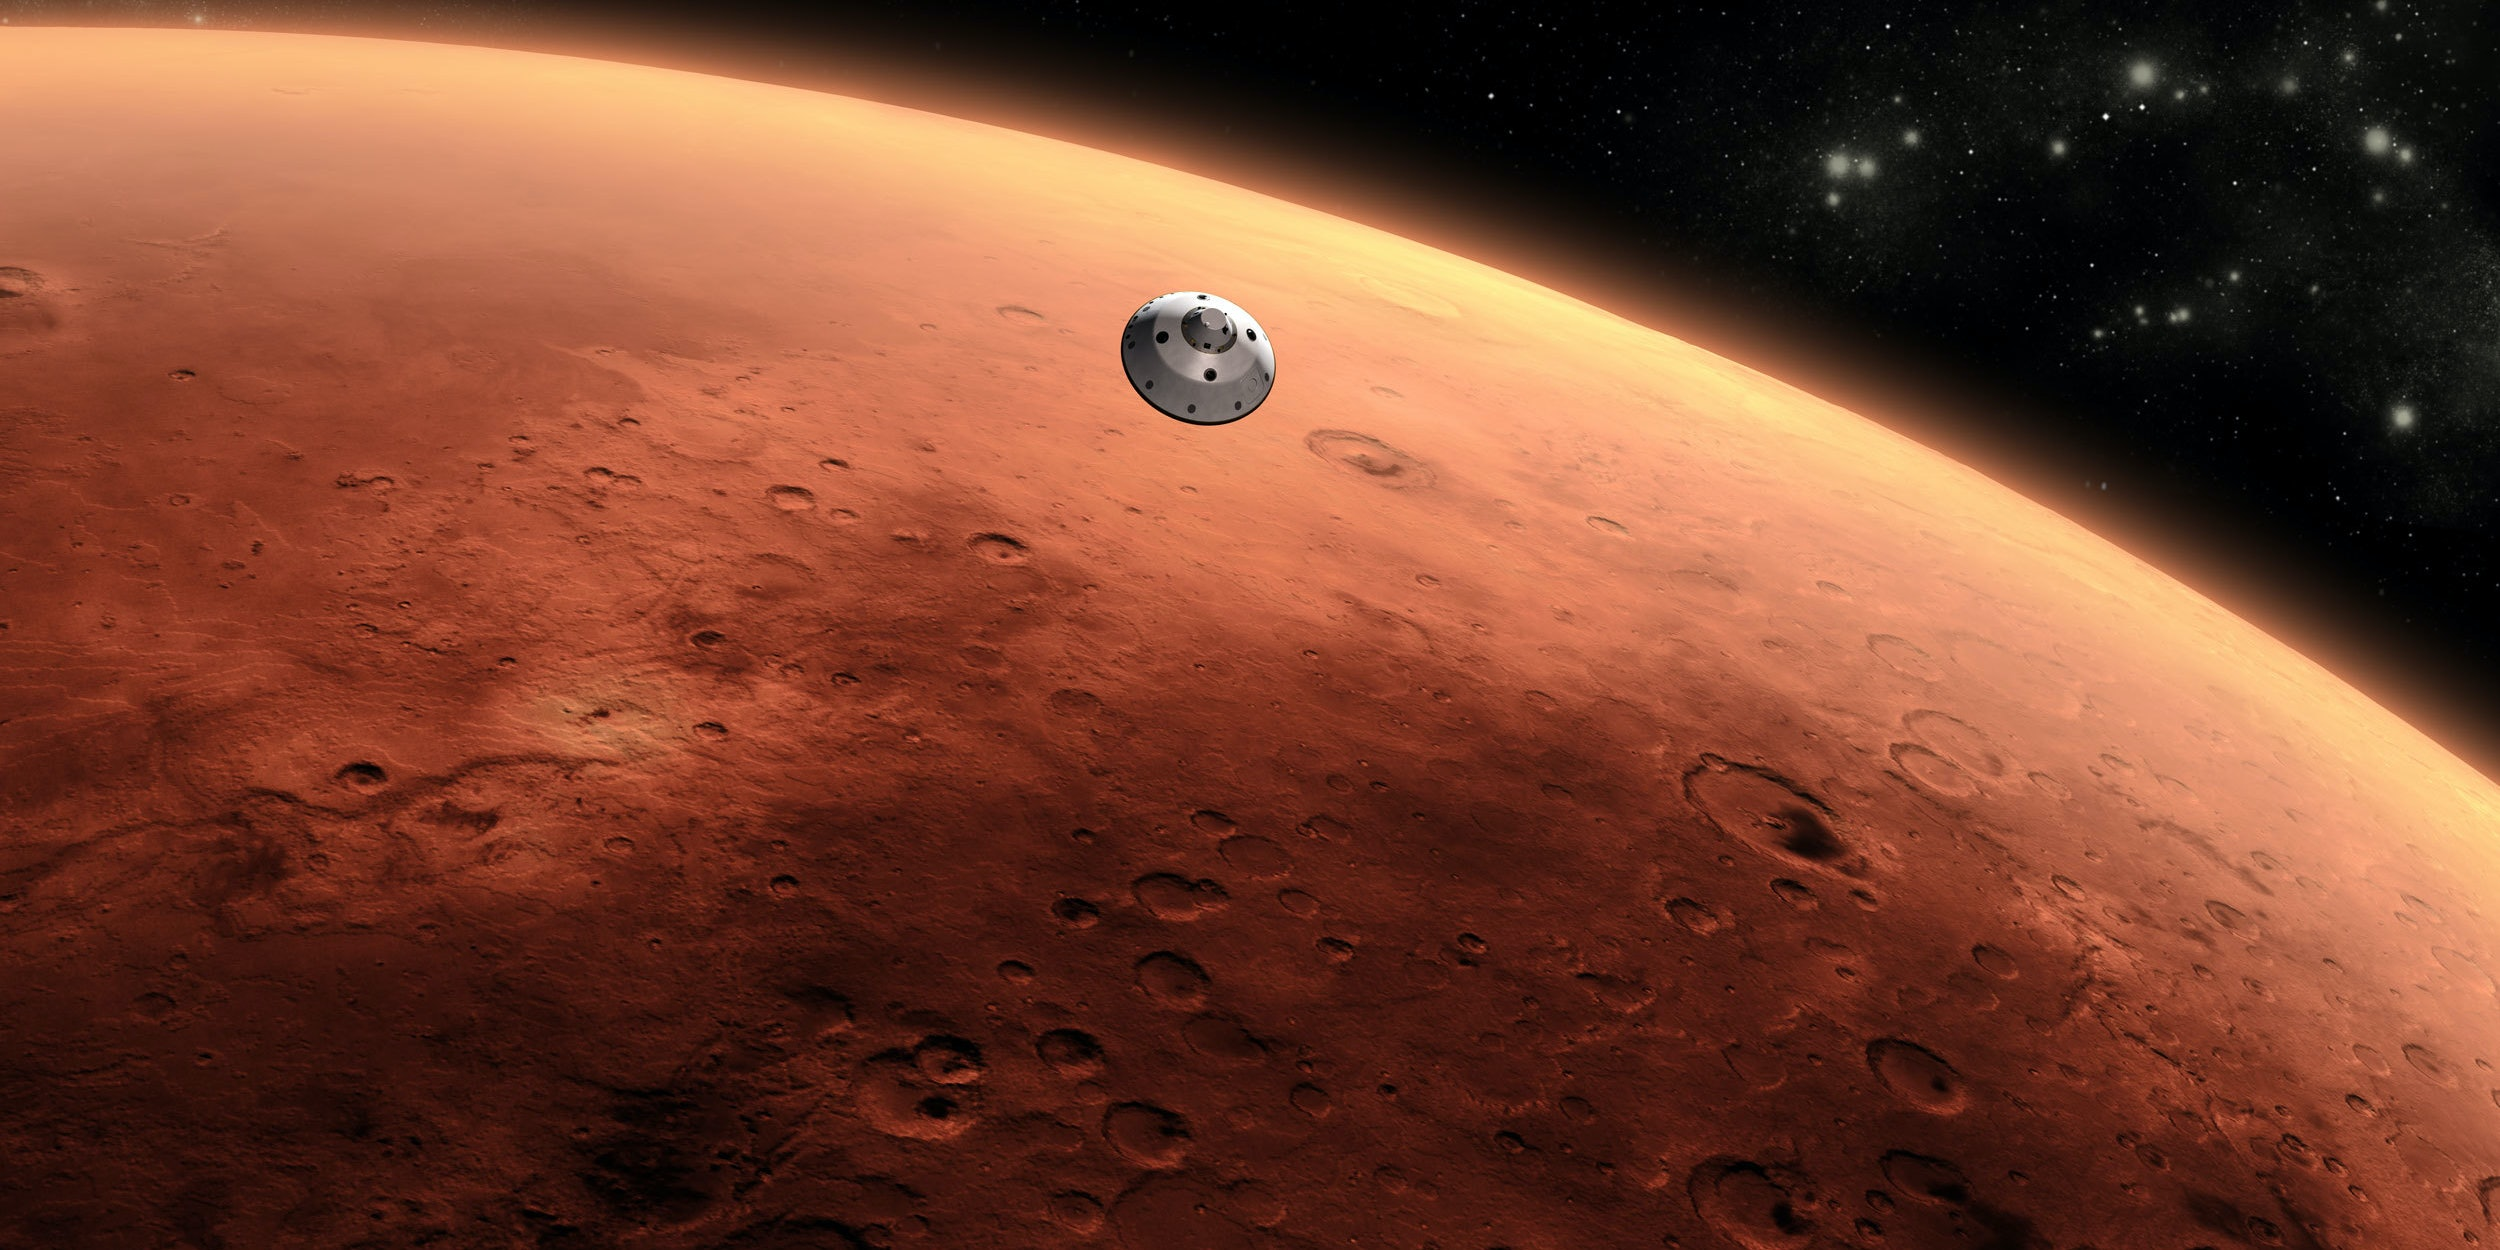 Artist's concept of a spacecraft approaching Mars.